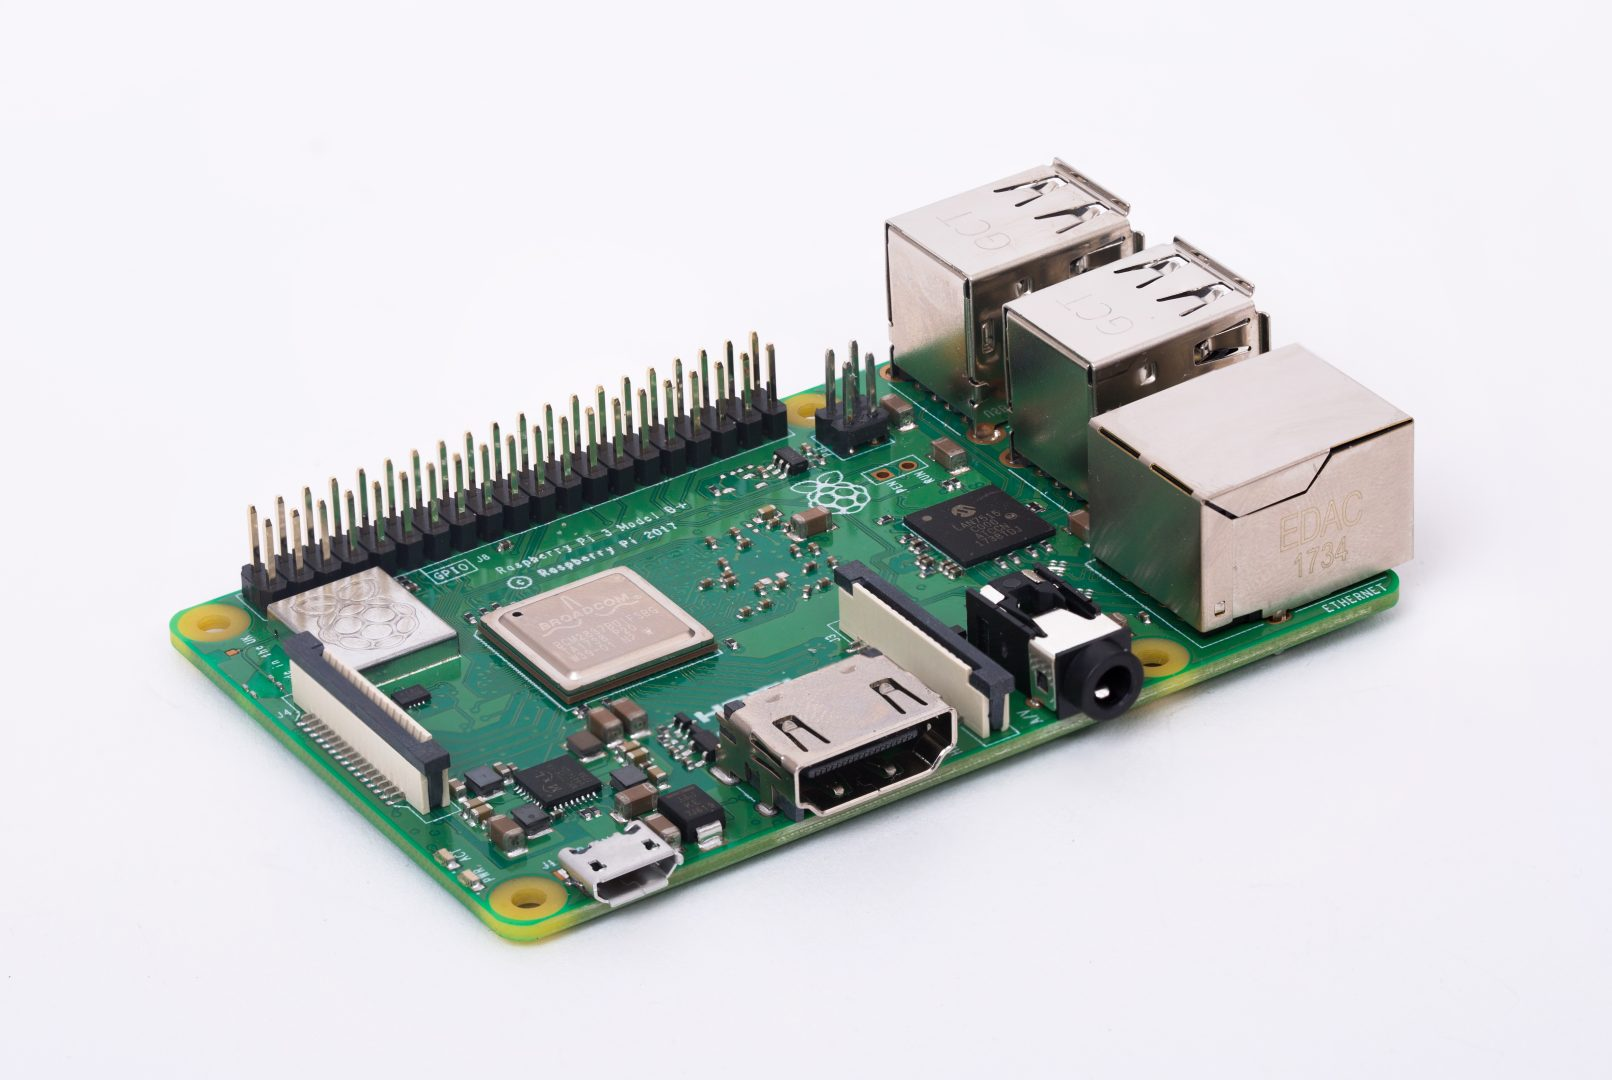 Raspberry pi 3 b+ operating system download